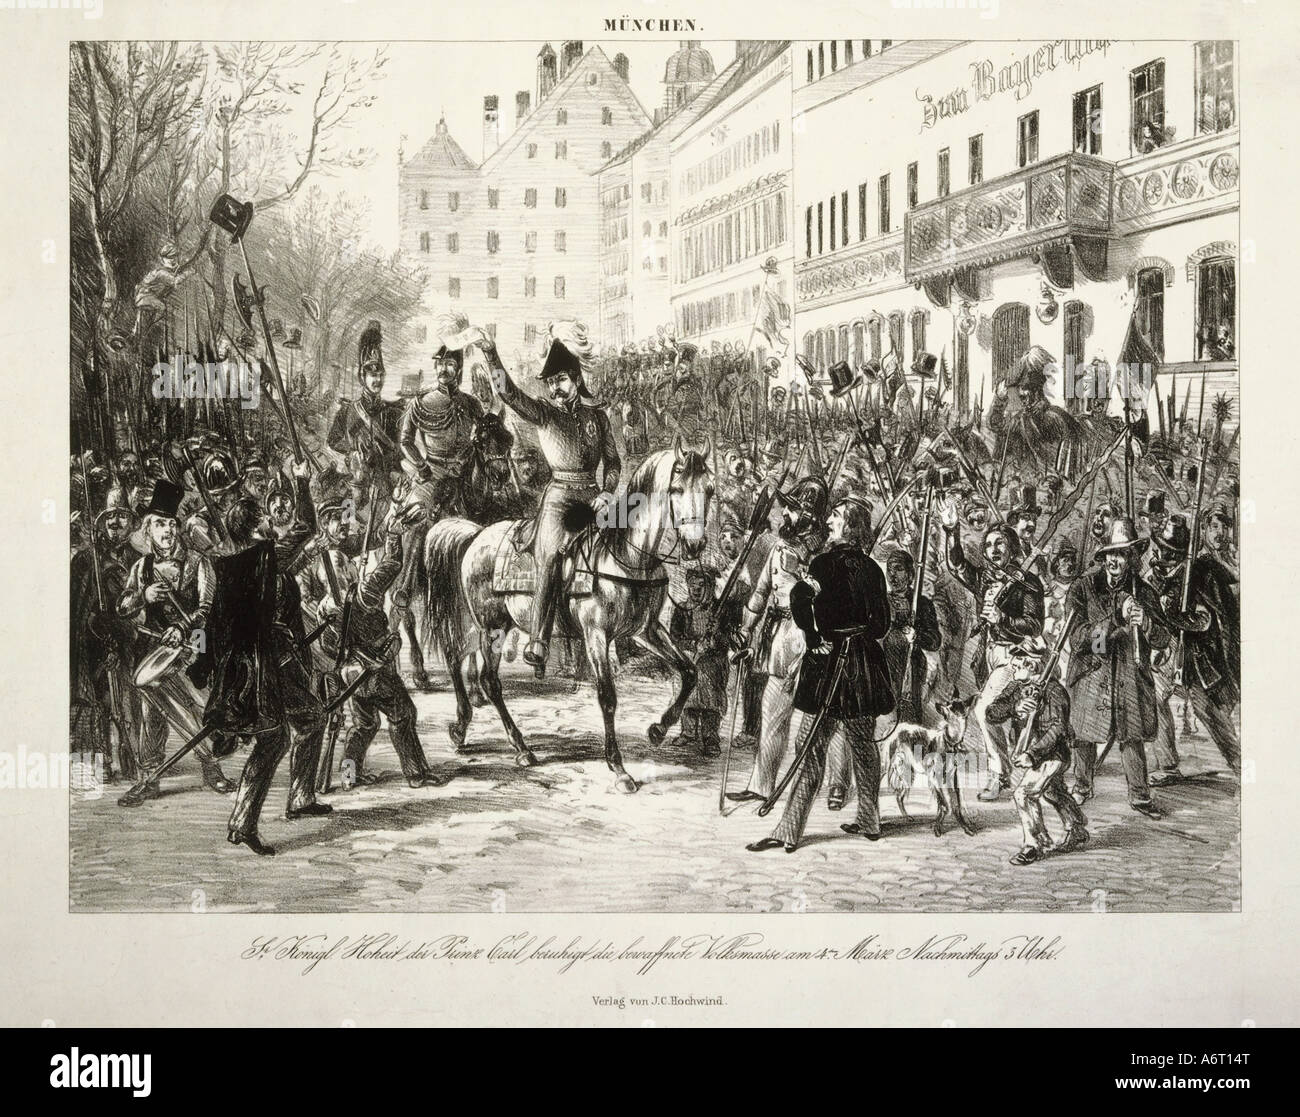 events, revolutions 1848/1849, Germany, Bavaria, Prince Charles of Bavaria becalming the masses, Munich 4.3.1848, - Stock Image